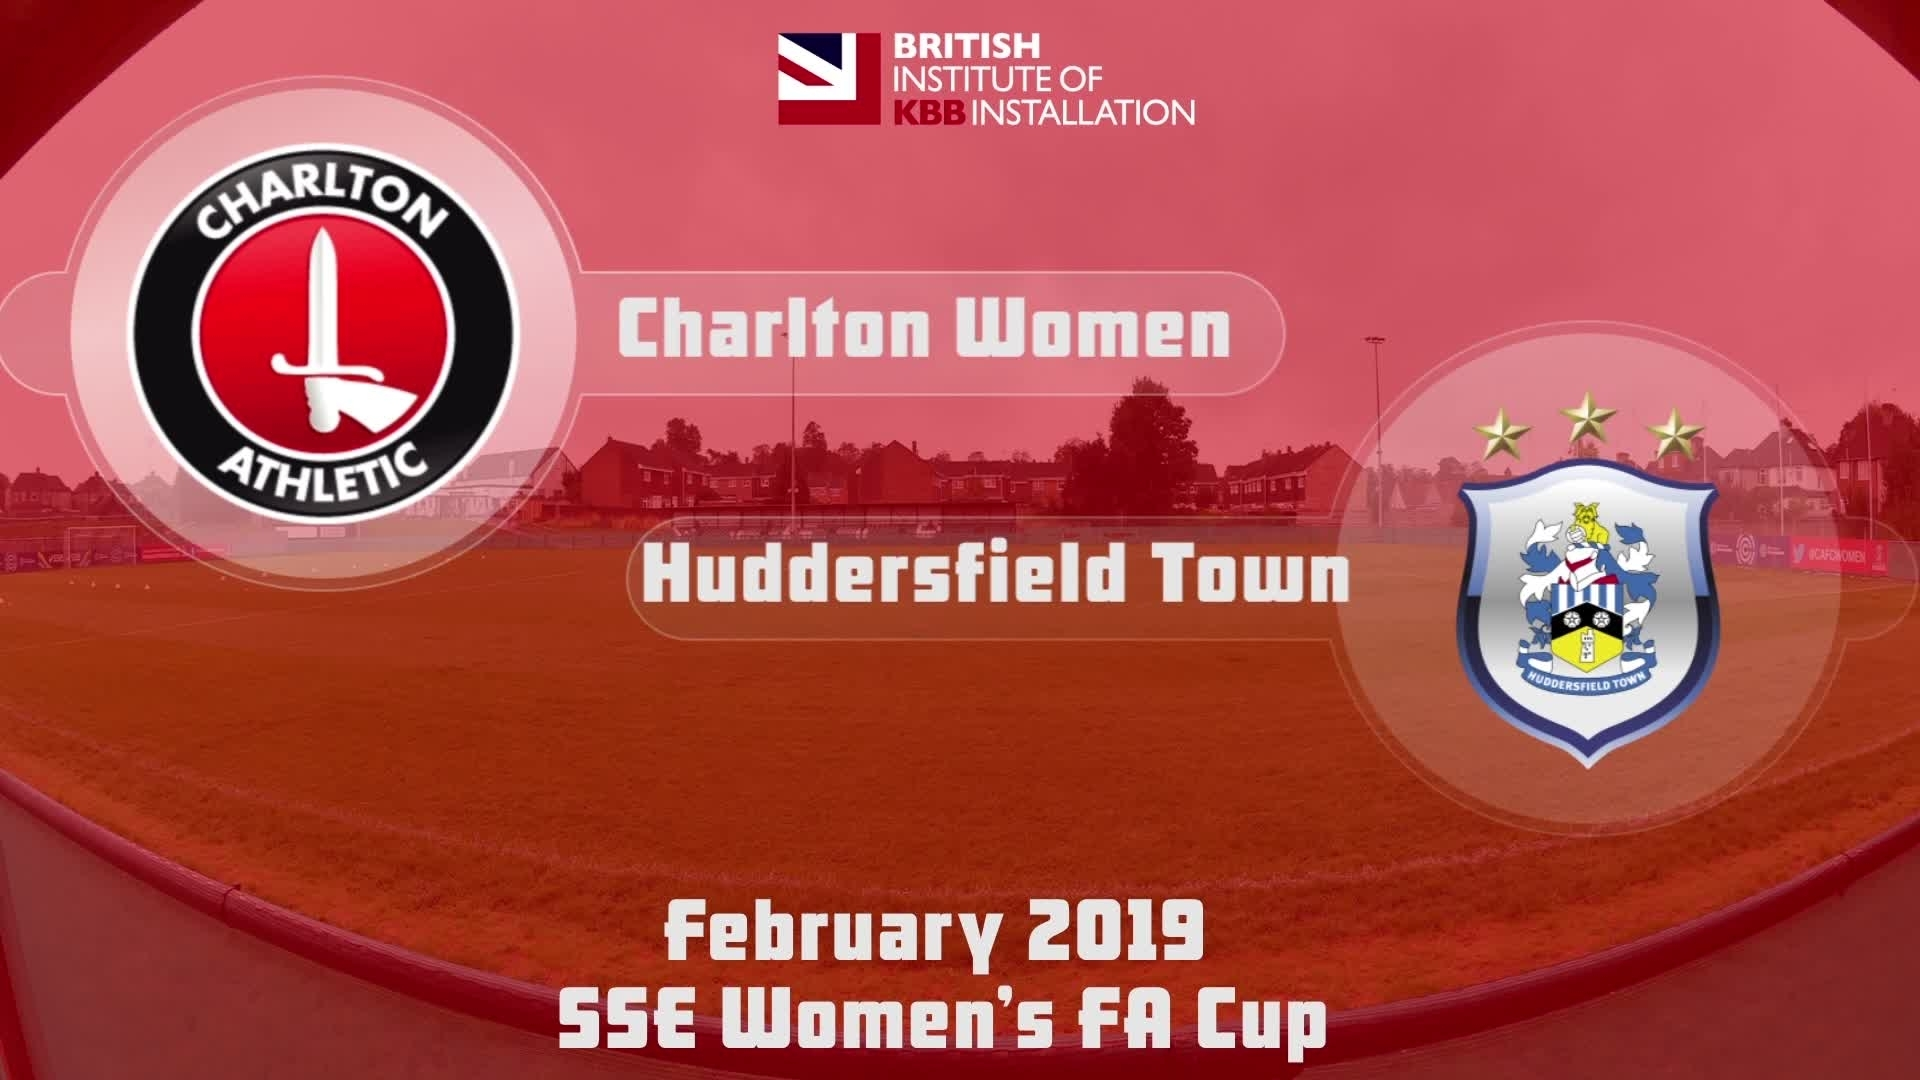 WOMEN'S HIGHLIGHTS | Charlton Women 3 Huddersfield 3 (Women's FA Cup Feb 2019)